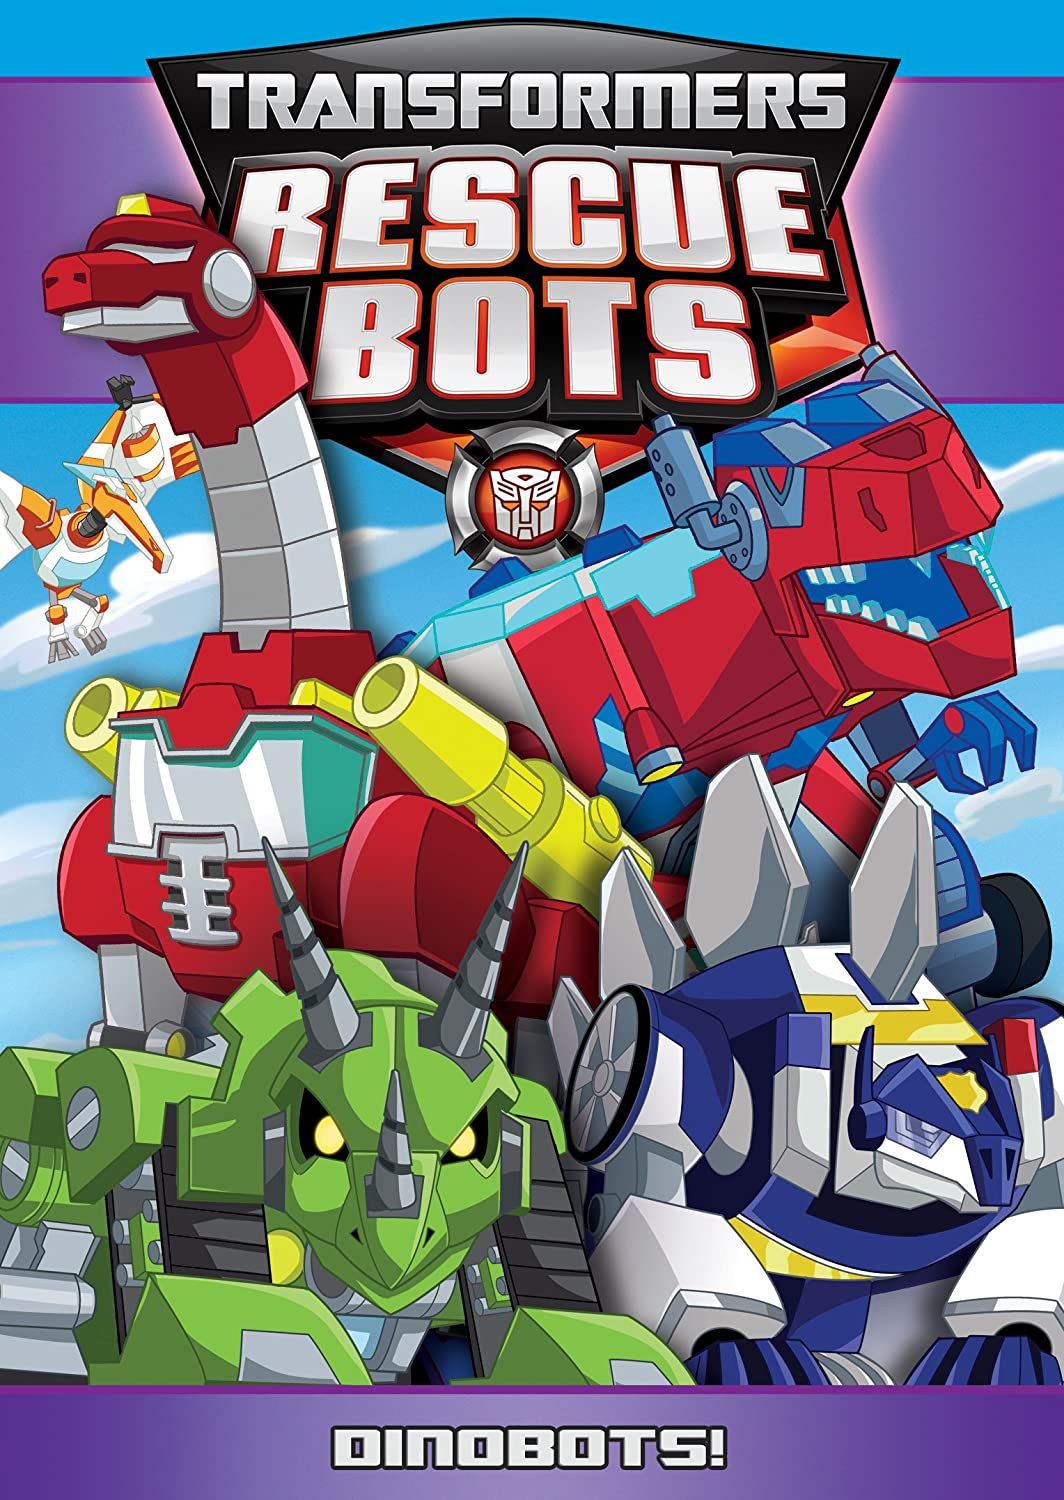 Amazon Transformers Rescue Bots Dinobots LeVar Burton Jason Marsden Various Movies TV